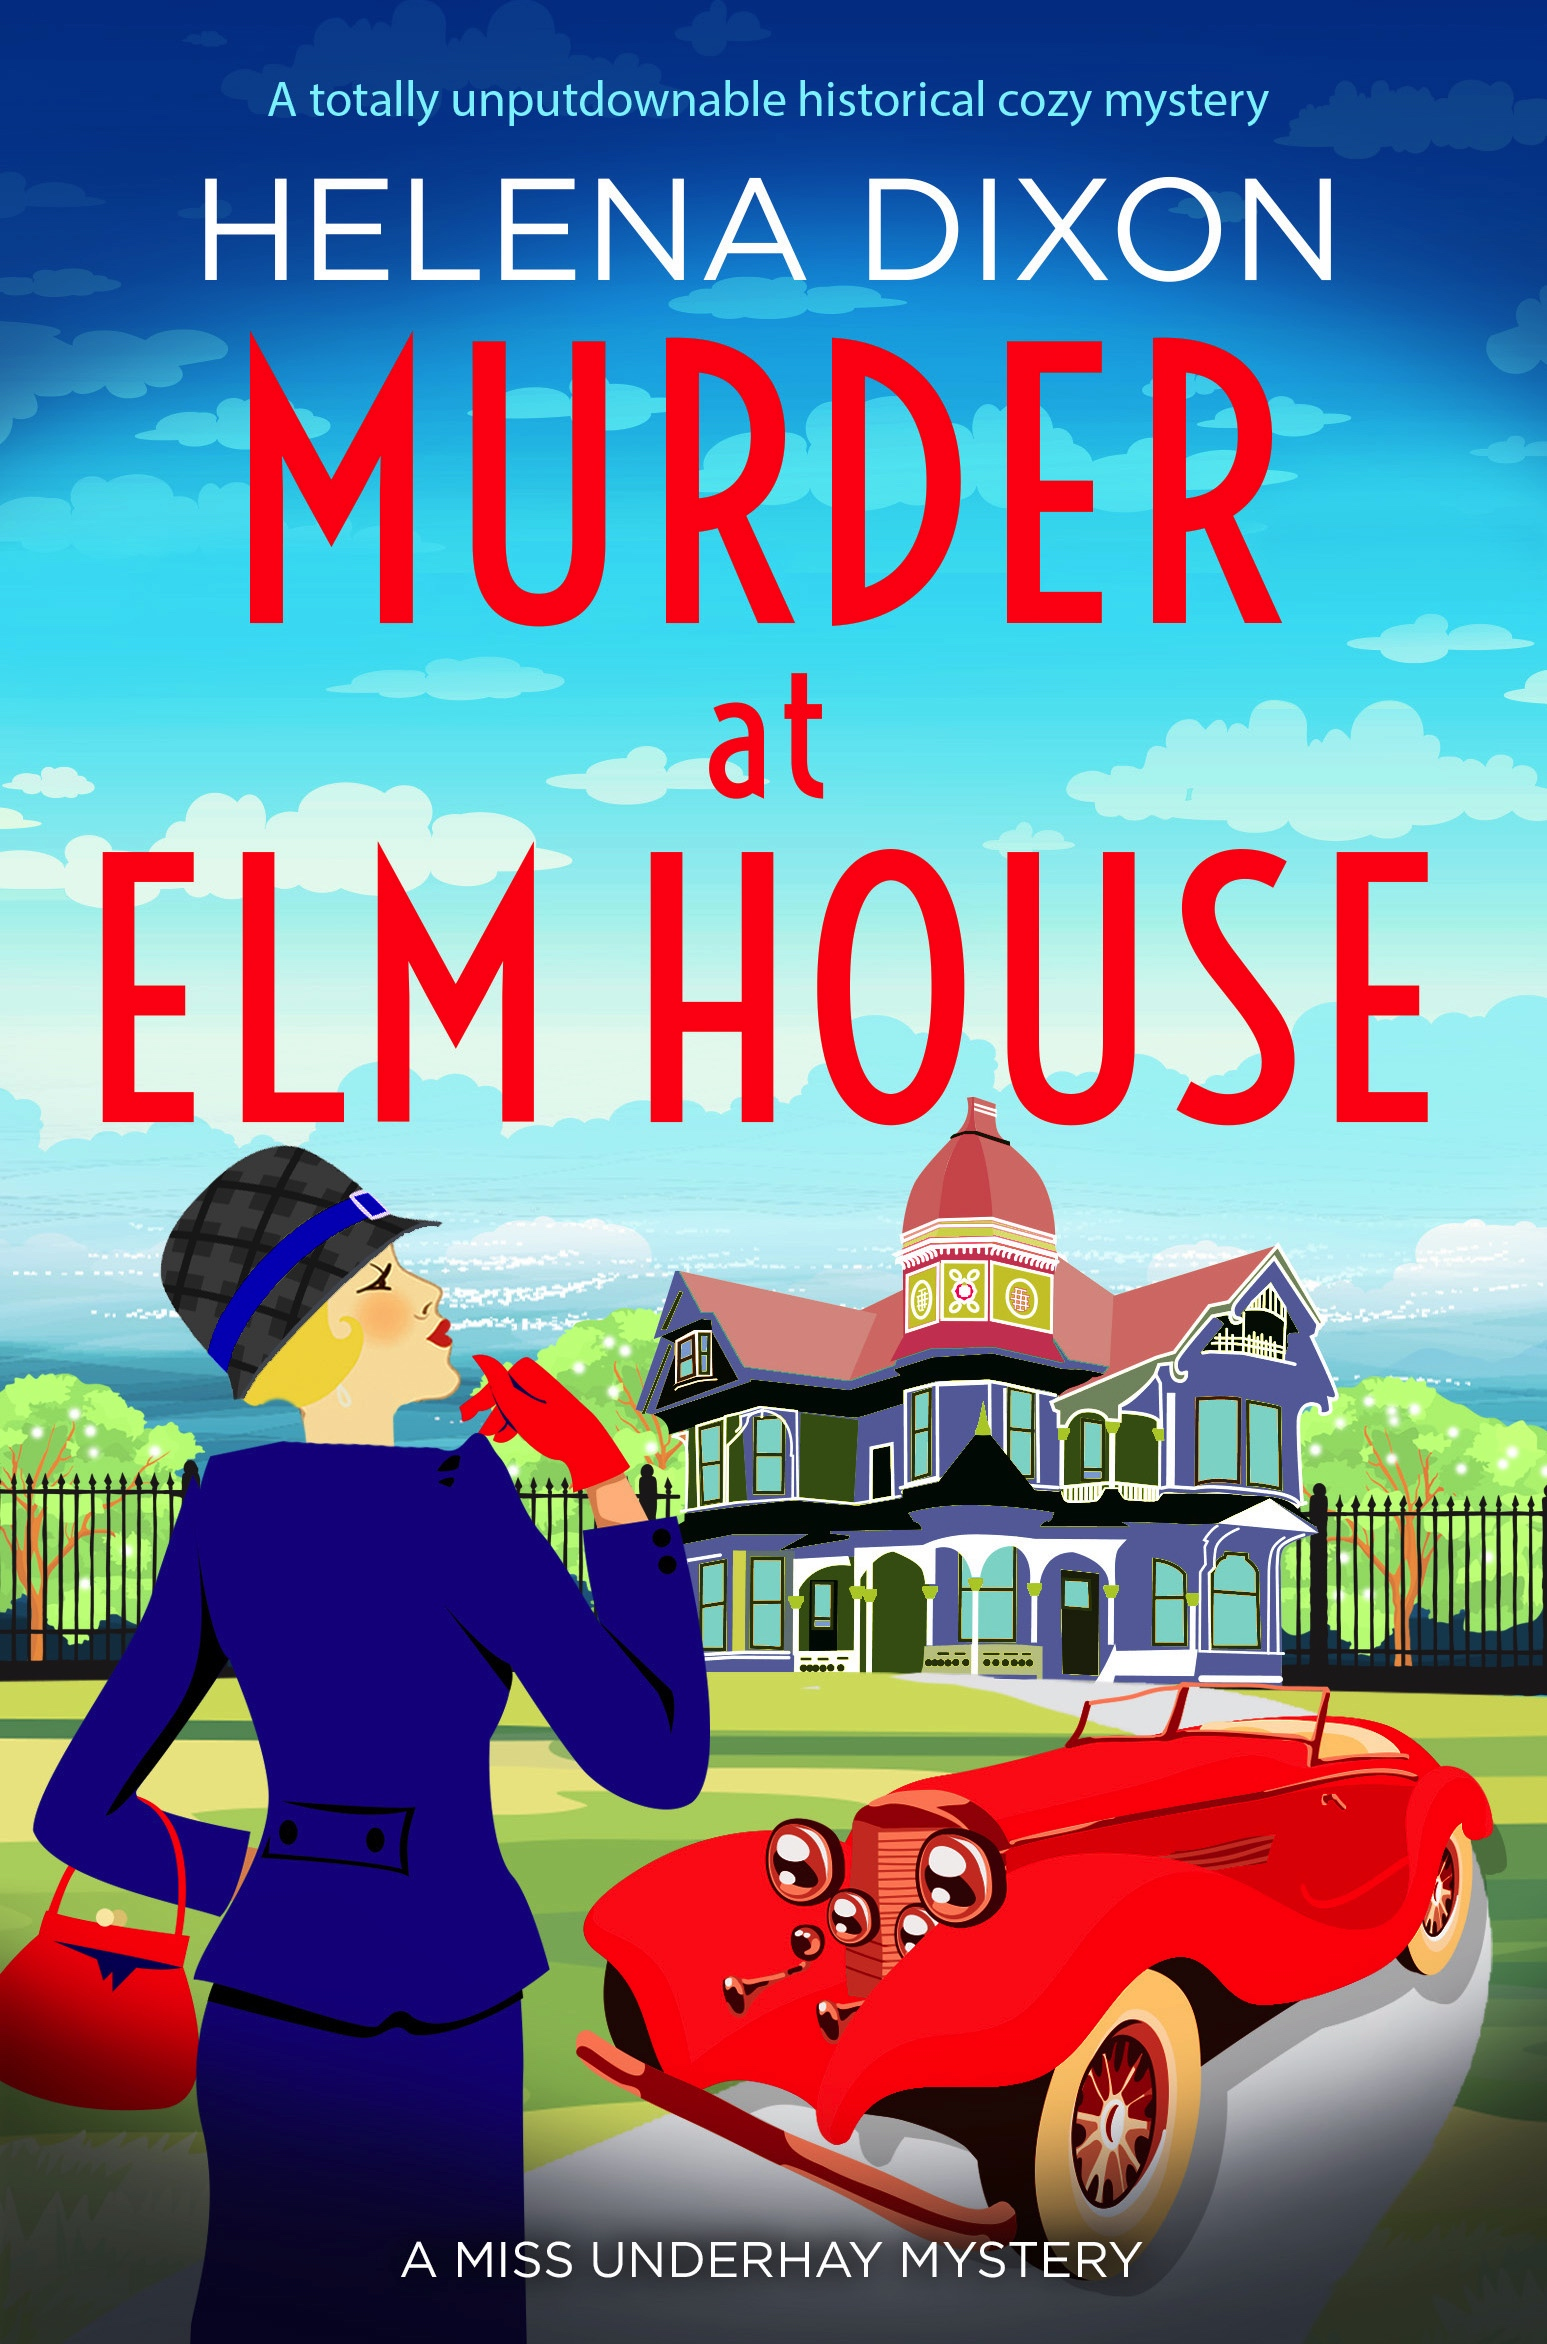 Murder at Elm House book cover